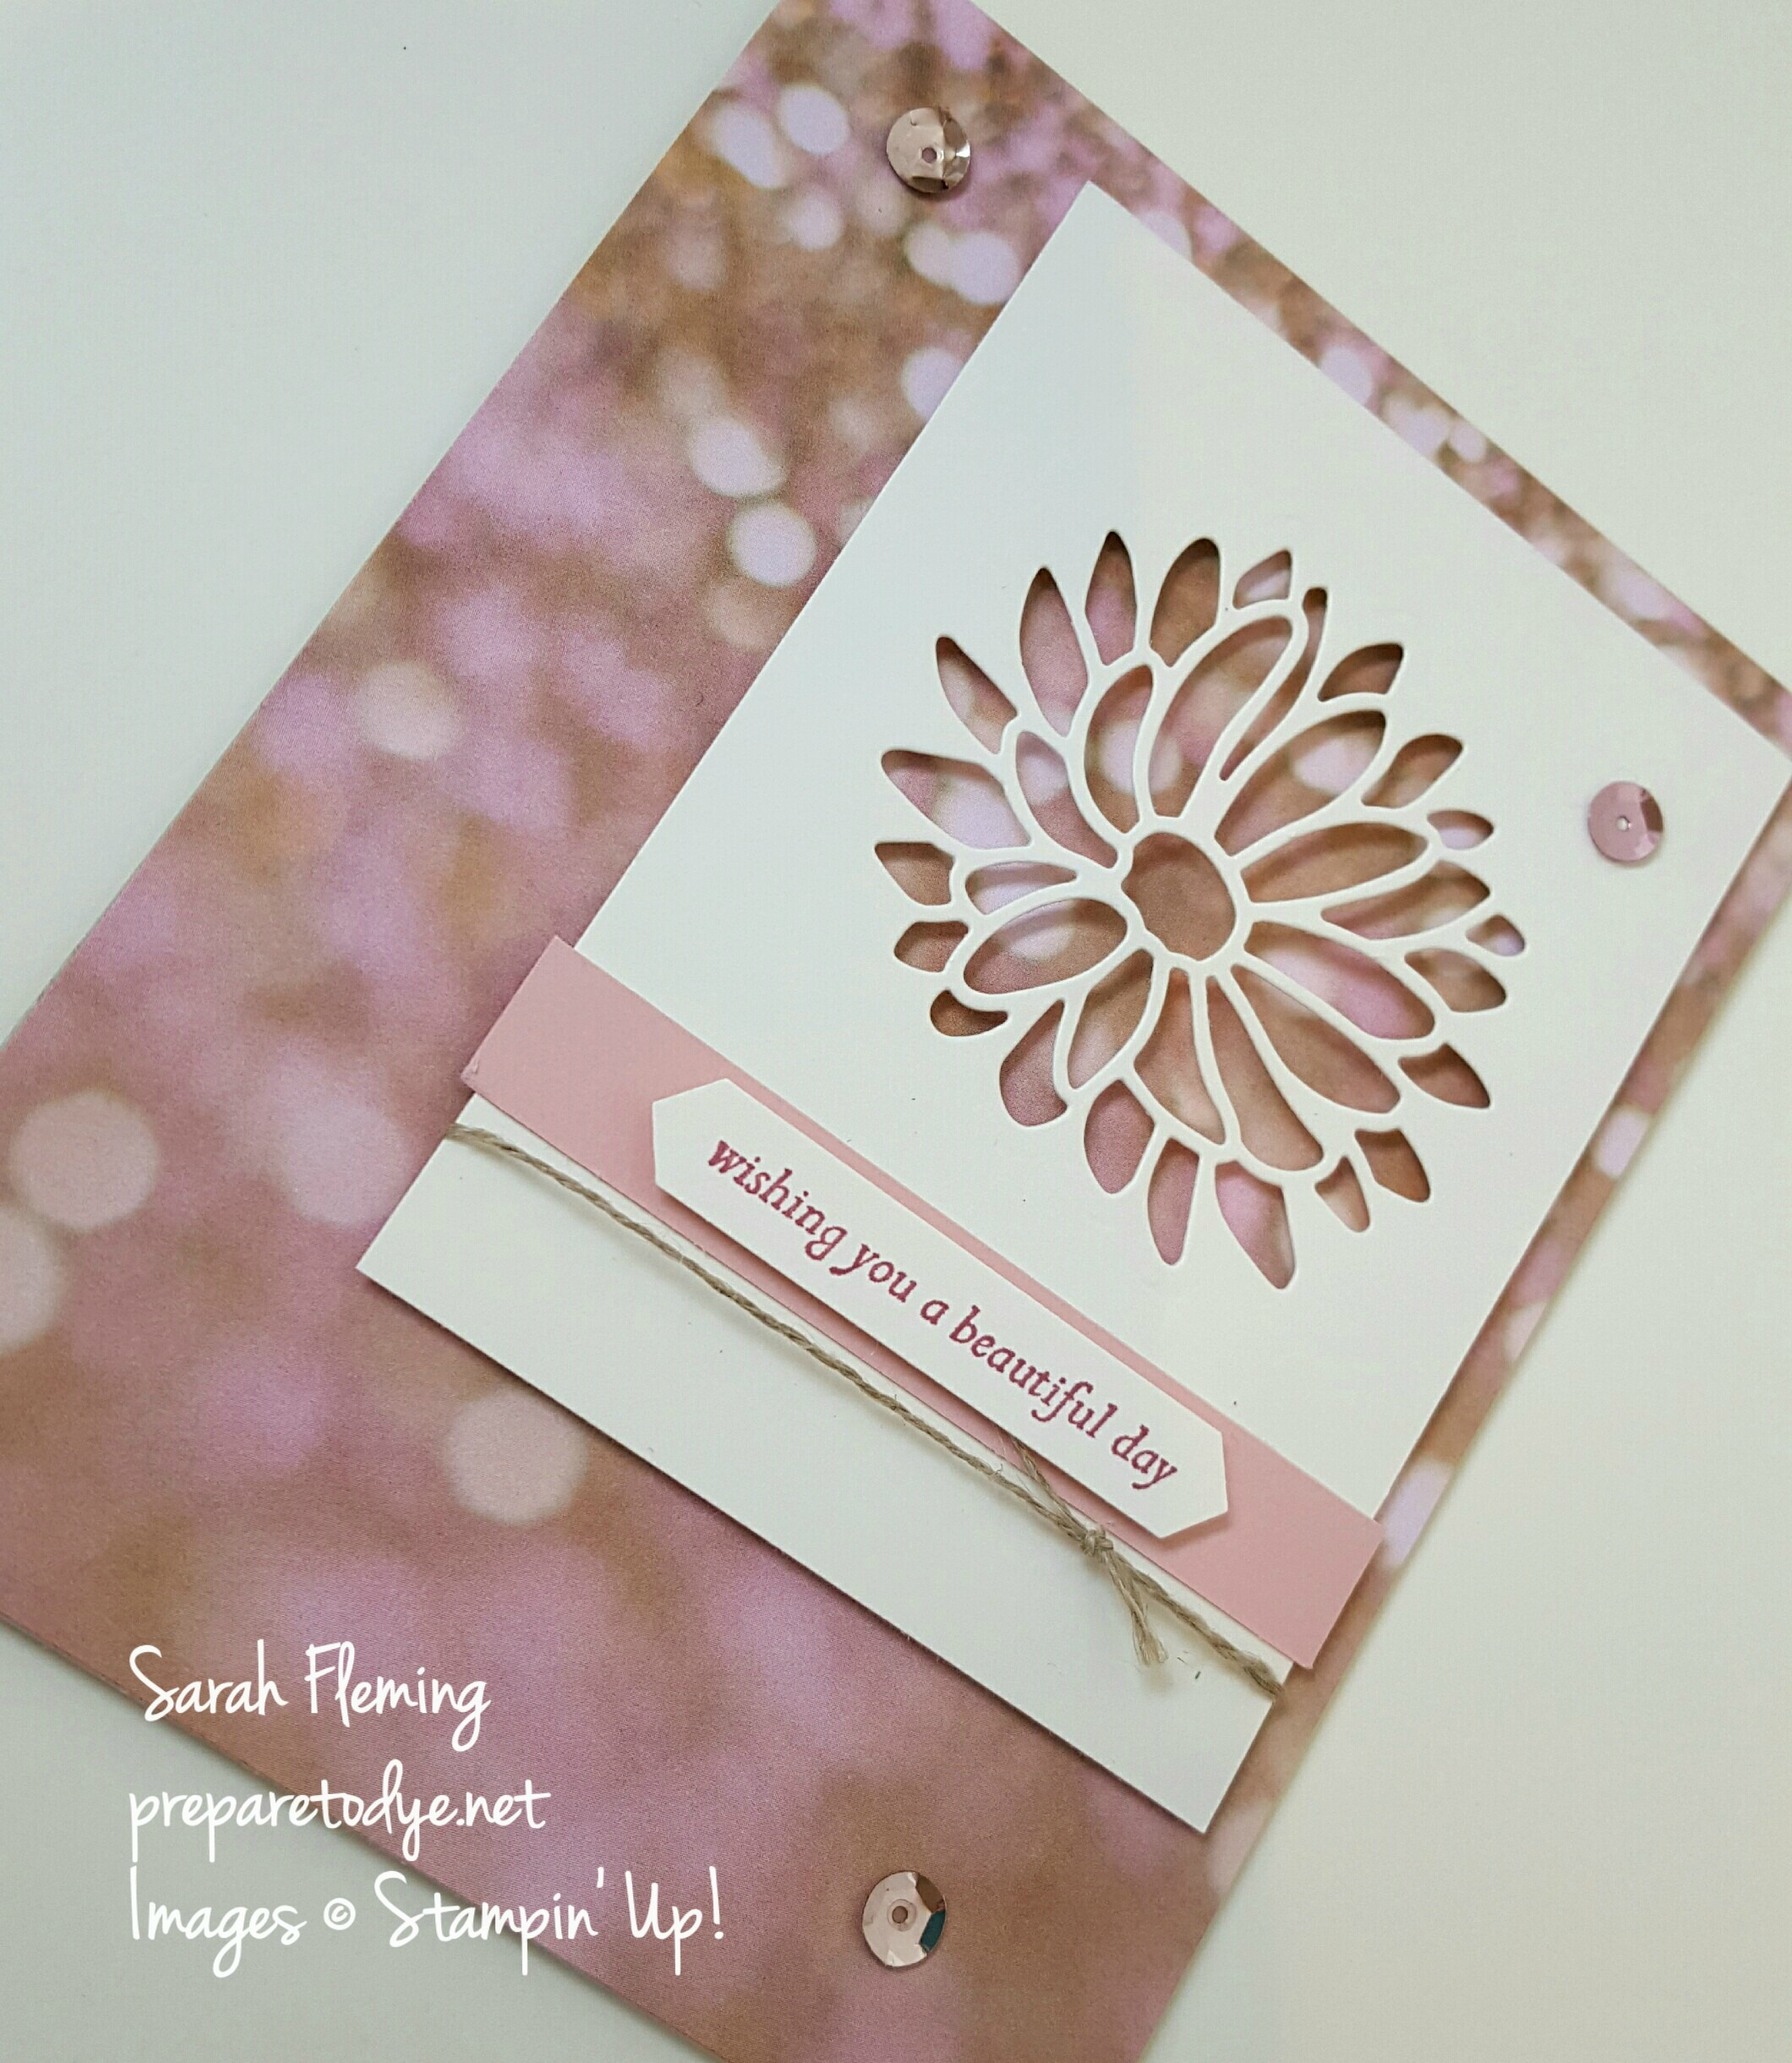 Stampin' Up! Falling in Love designer series paper and Special Reason bundle - new in the Occasions 2017 catalog, available Jan 4 - Sarah Fleming - Prepare to Dye Papercrafts